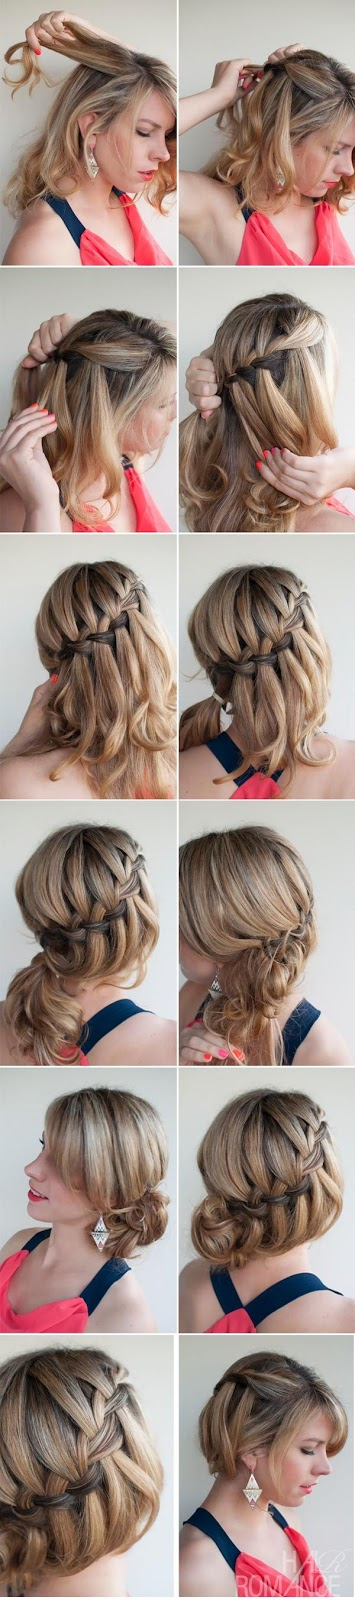 Remarkable 11 Interesting And Useful Hair Tutorials For Every Day Short Hairstyles Gunalazisus